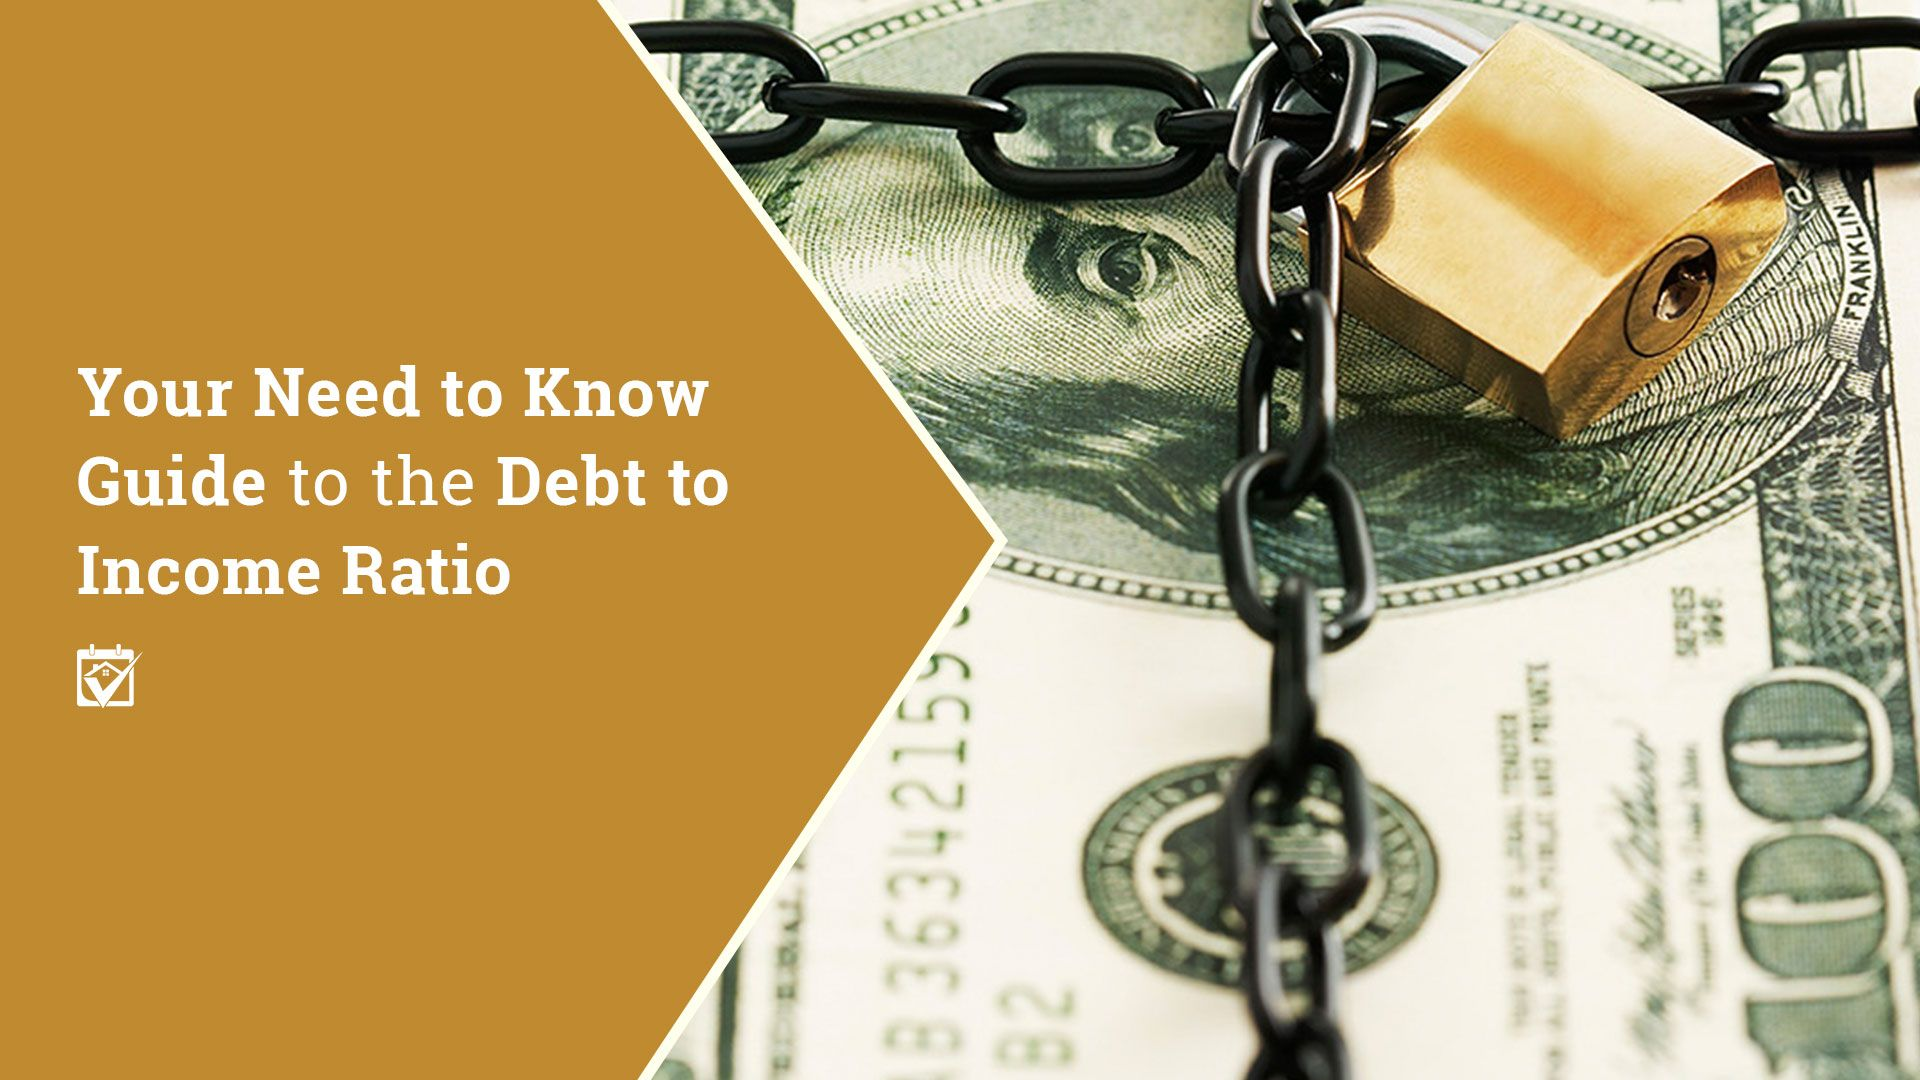 First Time Home Buyers & Debt To Income Why It's So Important